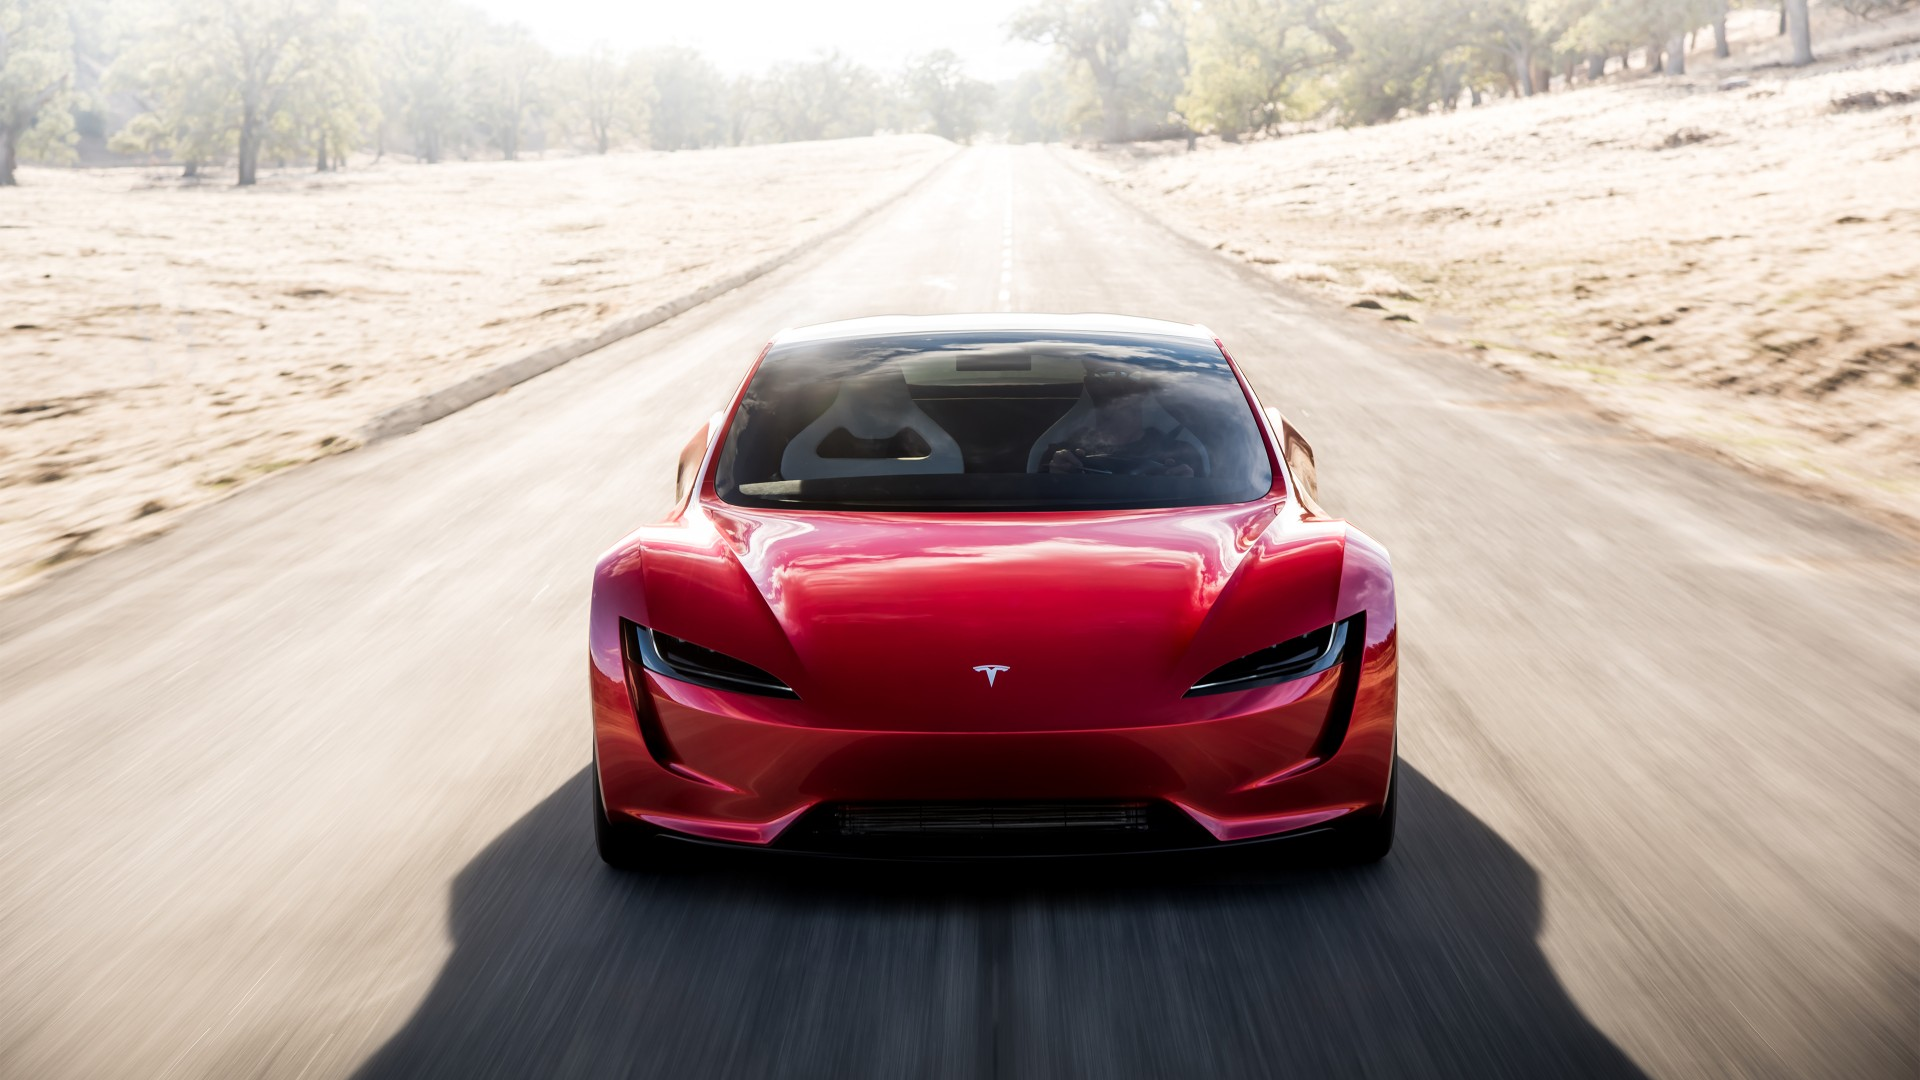 Ferrari Car Wallpaper Hd Download 2020 Tesla Roadster 4k 4 Wallpaper Hd Car Wallpapers